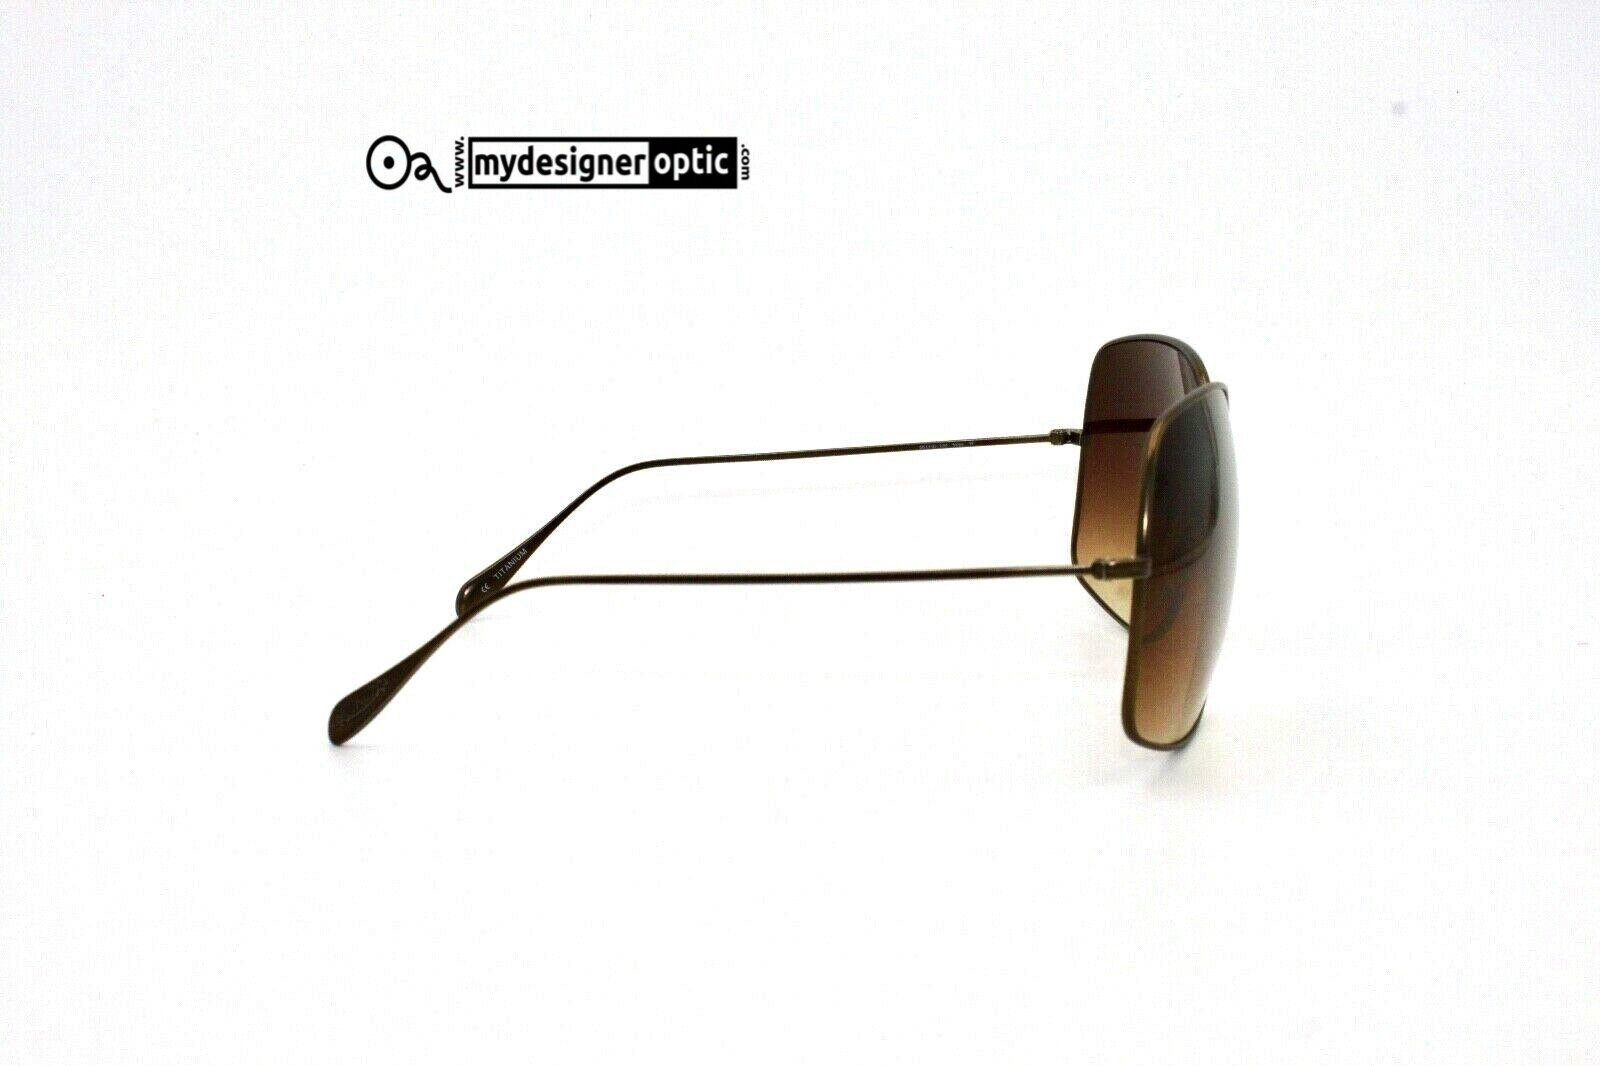 Oliver Peoples Sunglasses Nona Titanium W 66-16-130 Made in Japan - Mydesigneroptic